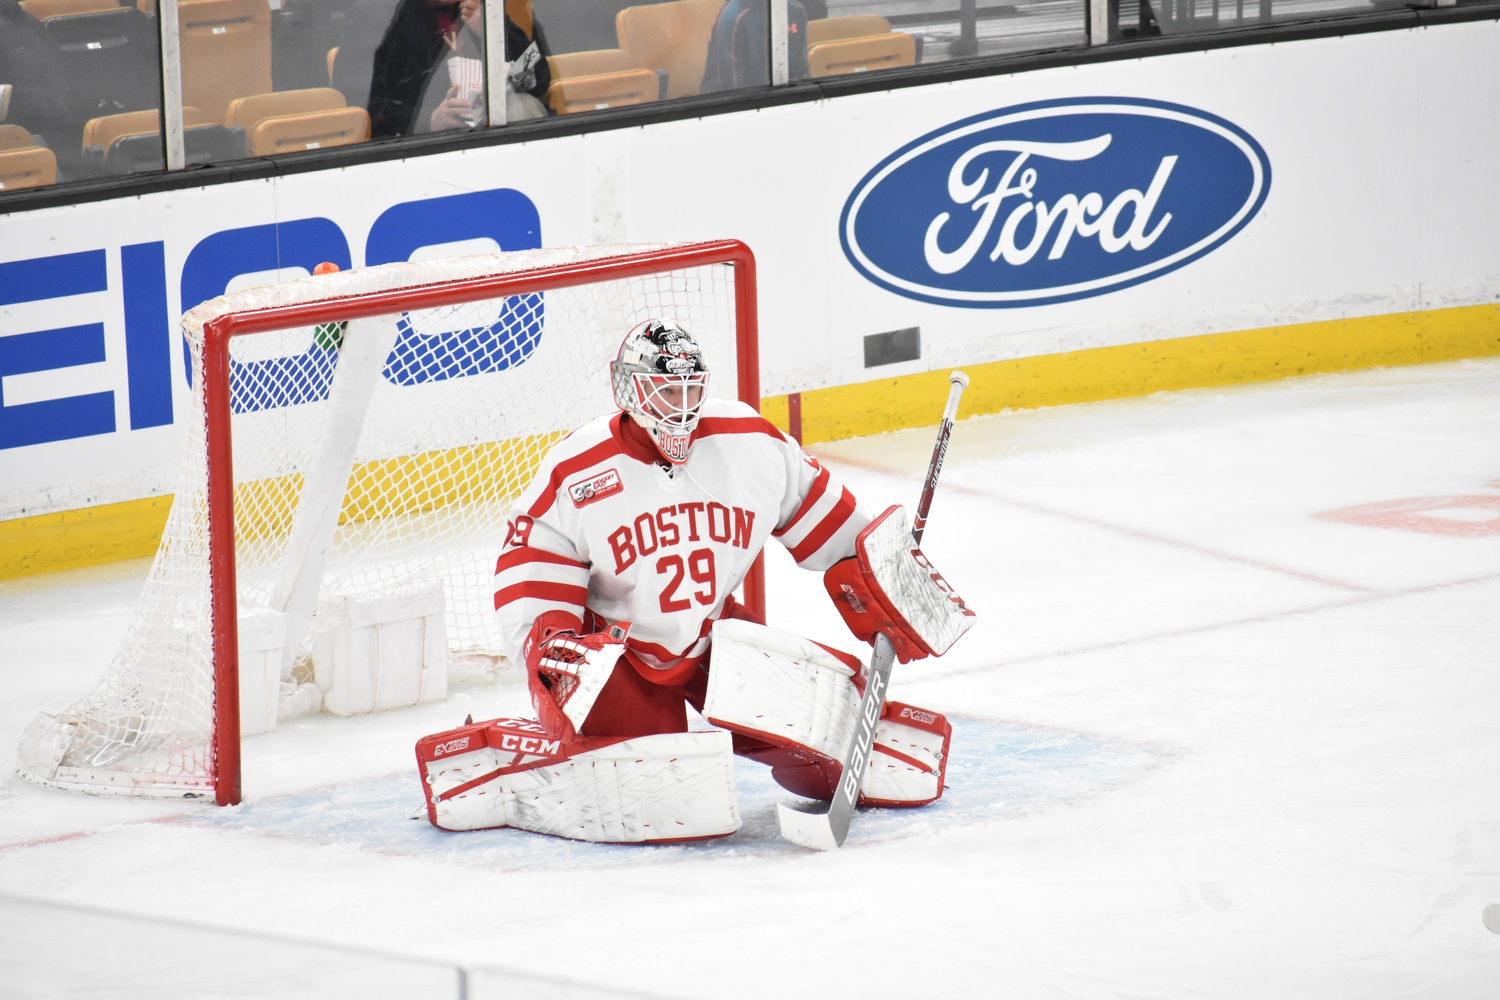 Freshman Vinnie Purpura started in net for the Terriers on Monday, displacing usual starter, junior Jake Oettinger.